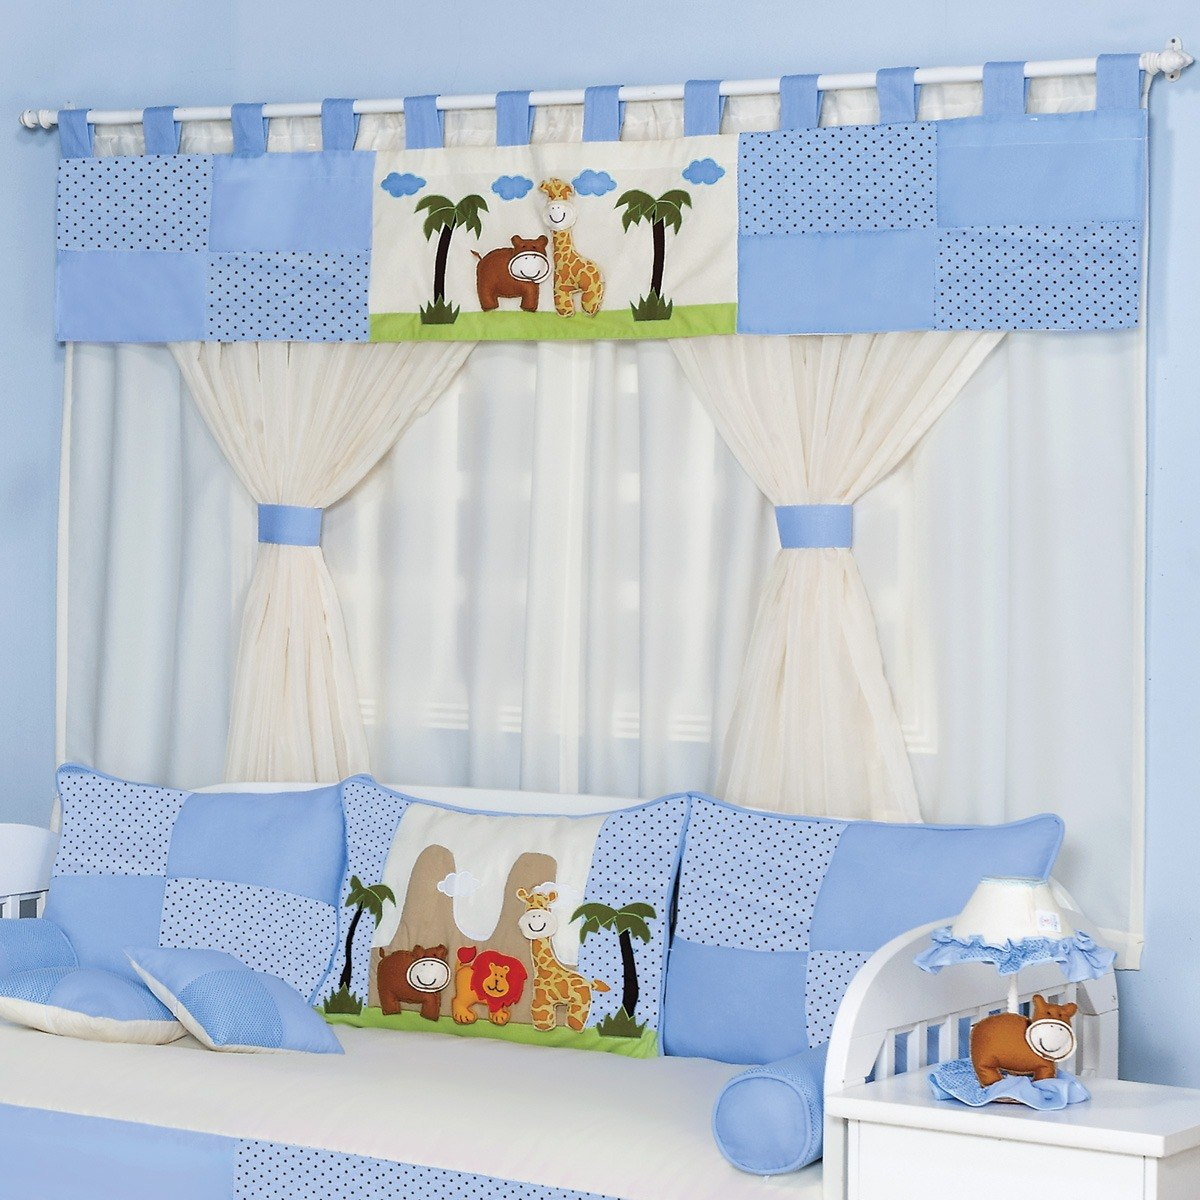 Quarto De Bebe Com Cortina Decorao Quarto De Beb Com Cortina